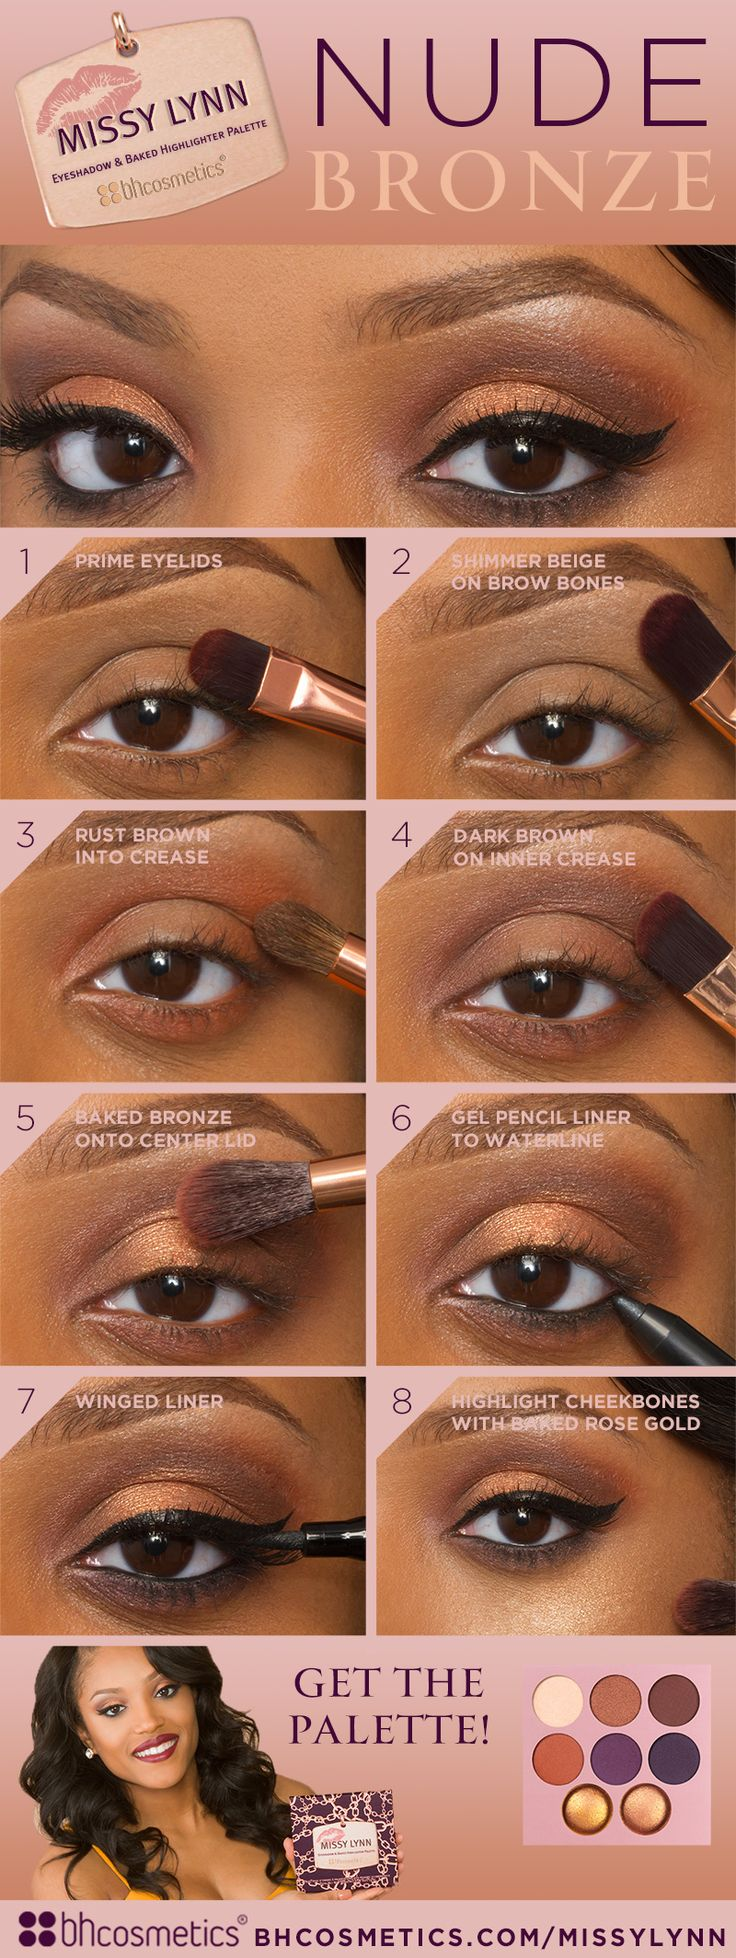 There's nothing prettier than a nude bronze look. Check out our official blo...